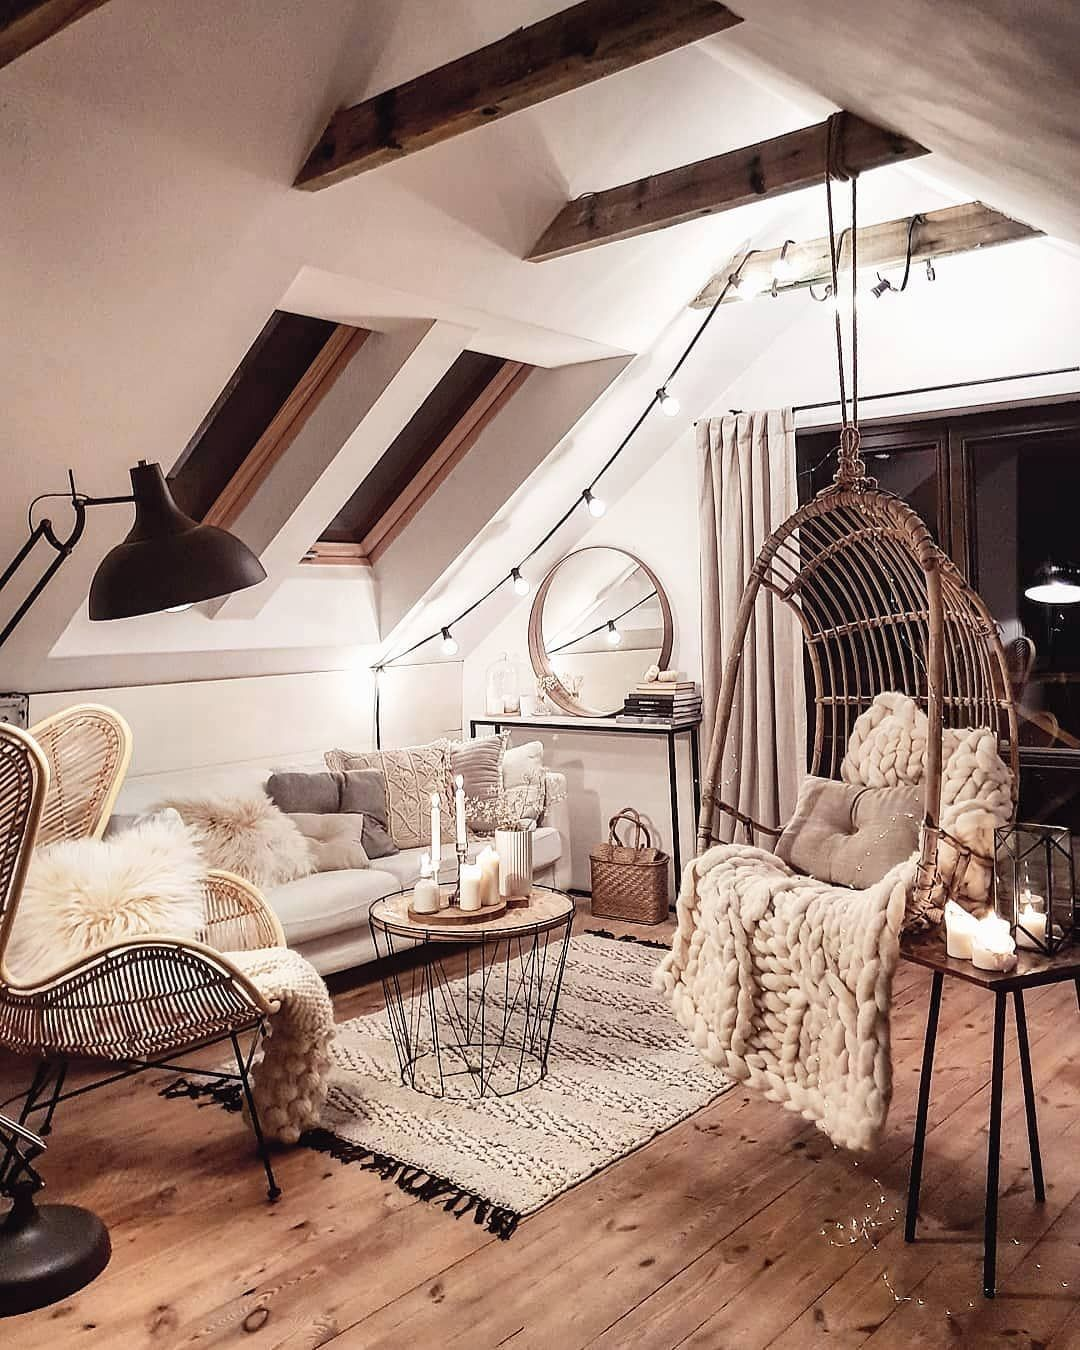 Lavish Interiors On Instagram Swipe Left To Get Some Diy Vibes Beautiful Bohemian Style With Some Diy Touch Up Home Comfy Living Room Interior